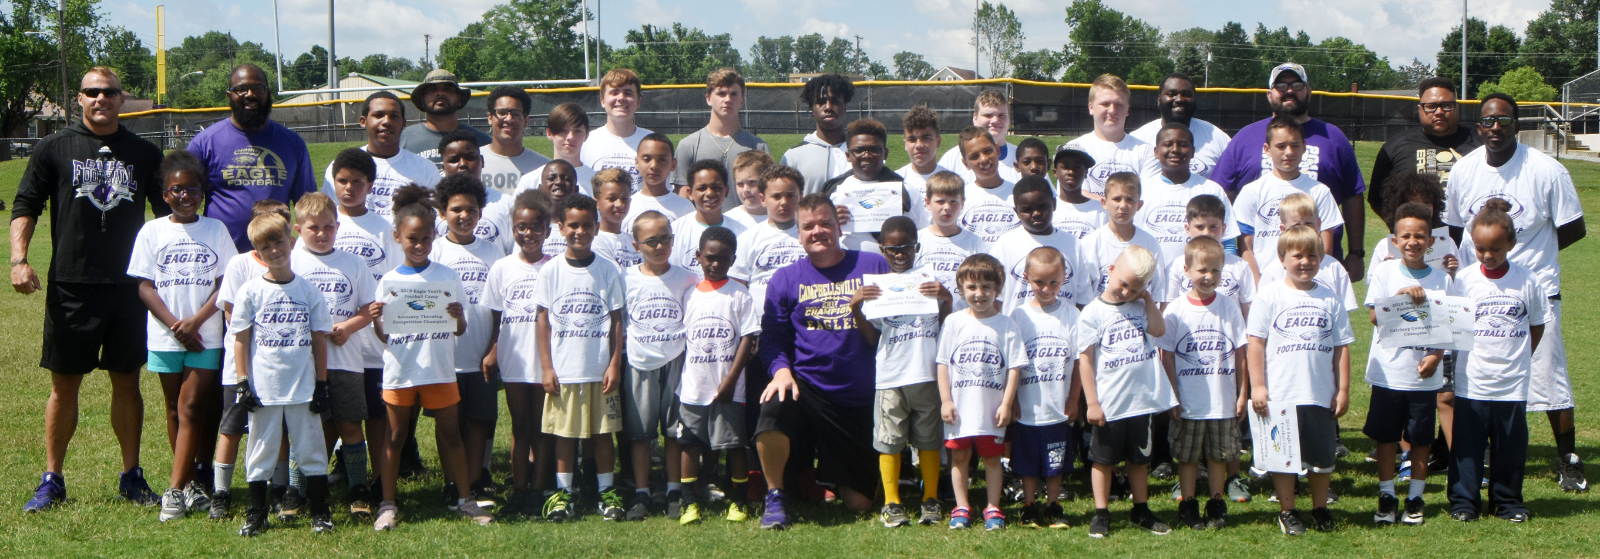 More than 40 participate in Eagle Youth Football Camp